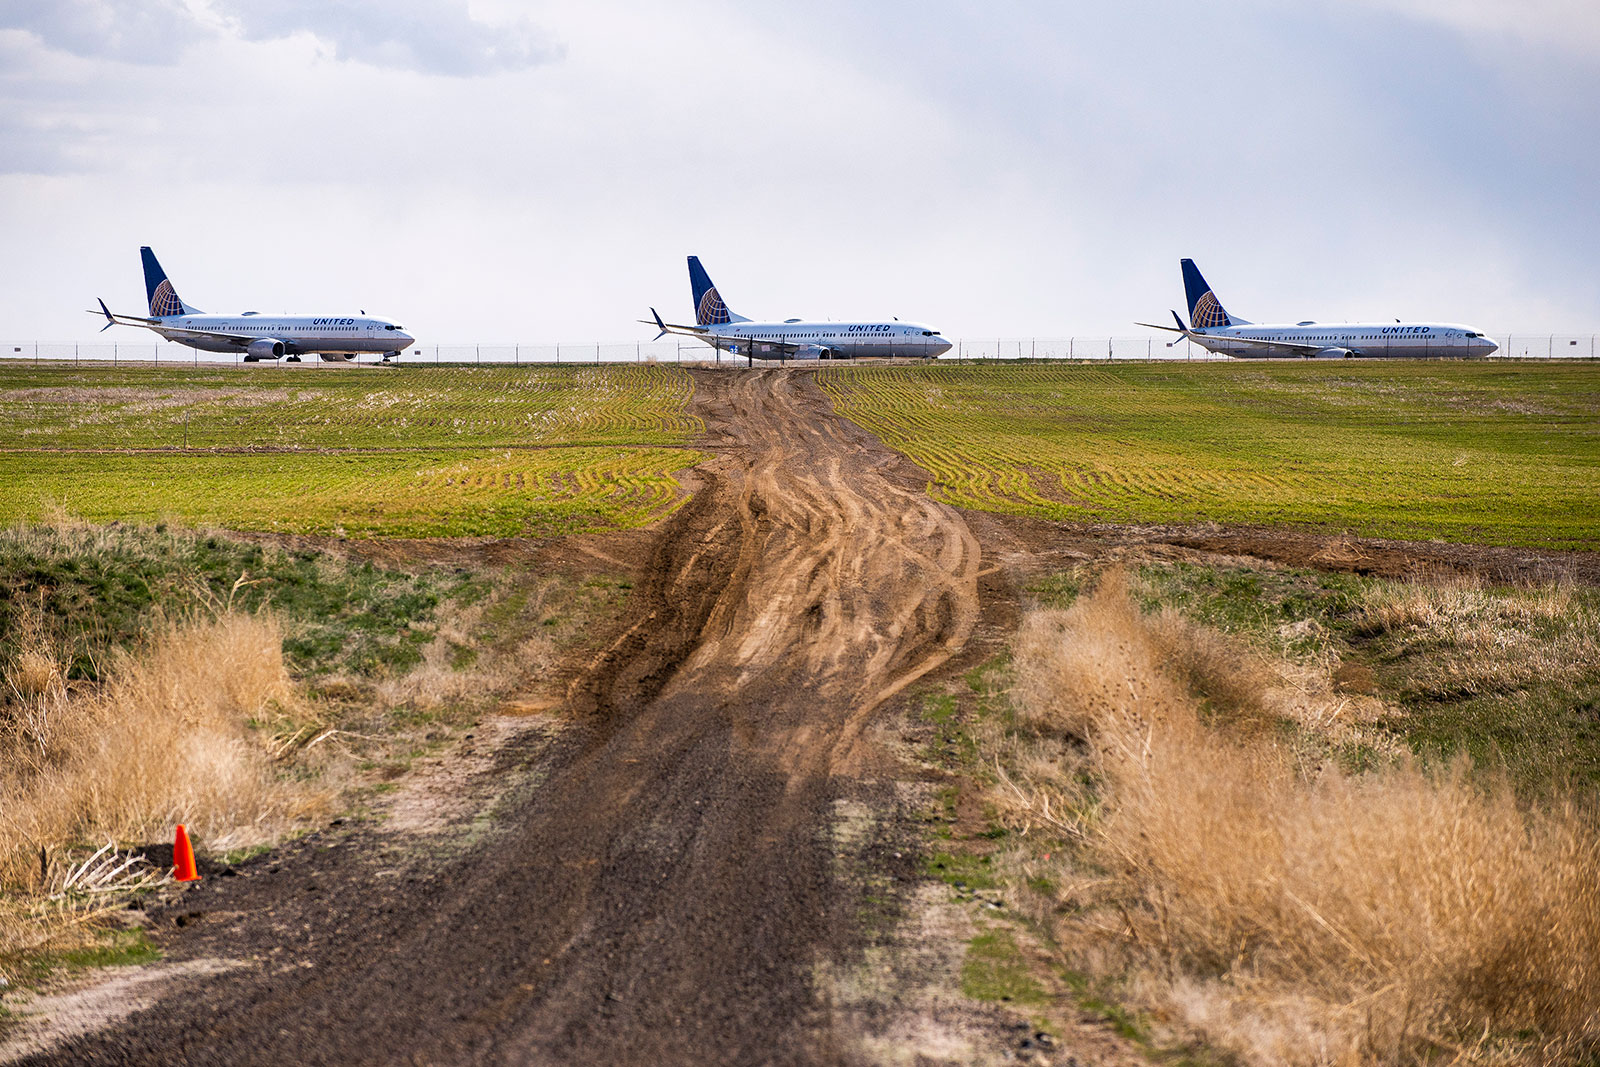 United Airlines planes sit parked on a runway at Denver International Airport.